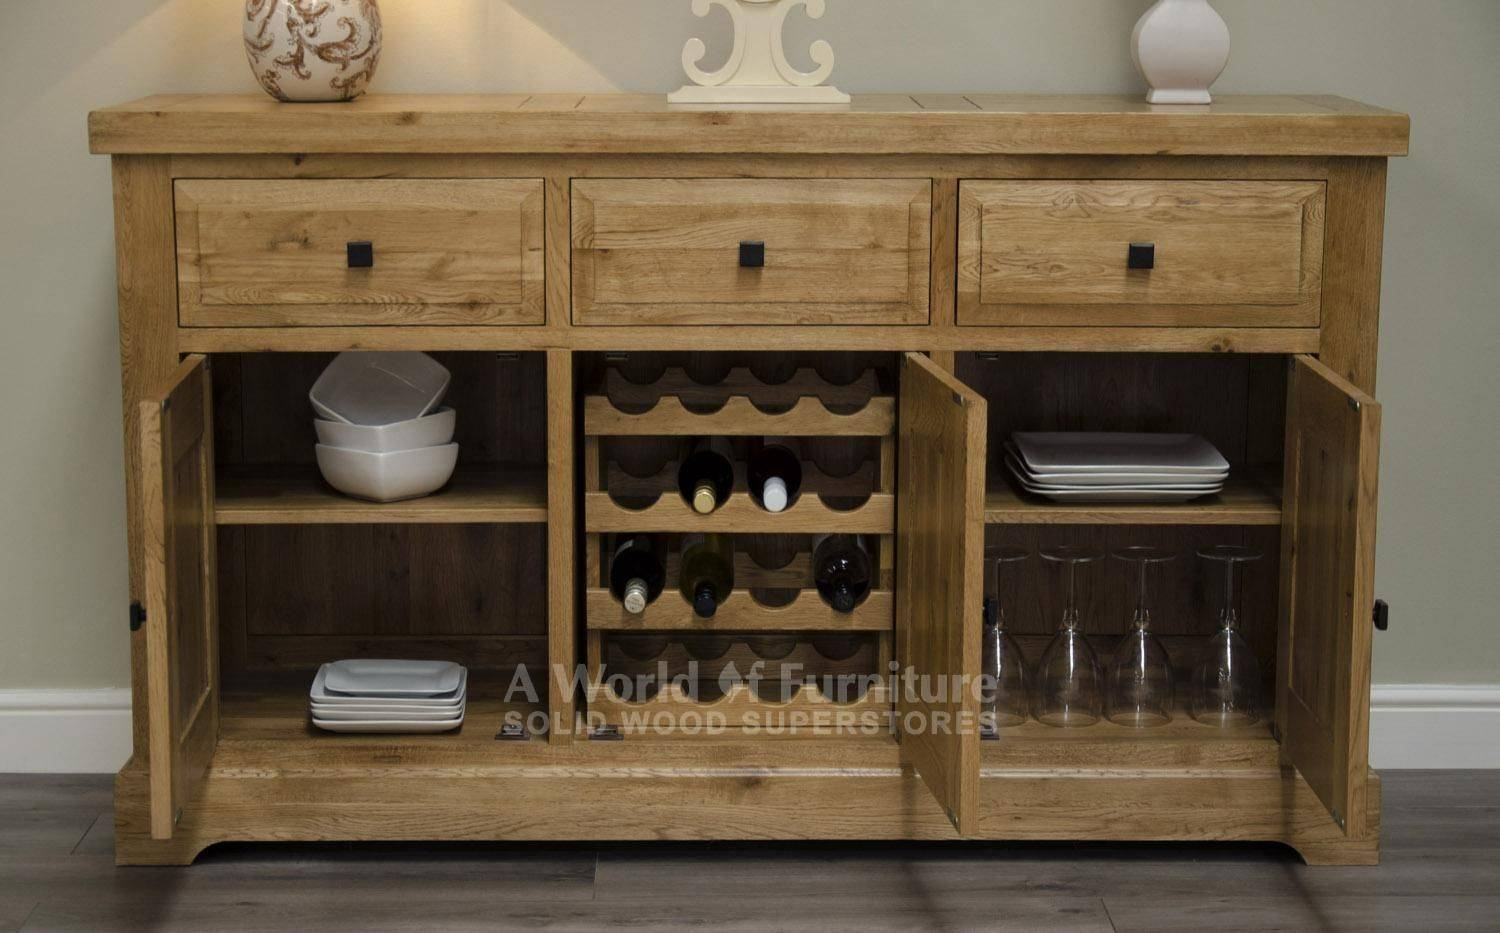 Rustic Deluxe 3 Door Sideboard With Internal Wine Rack | A World for Sideboards With Wine Racks (Image 17 of 30)